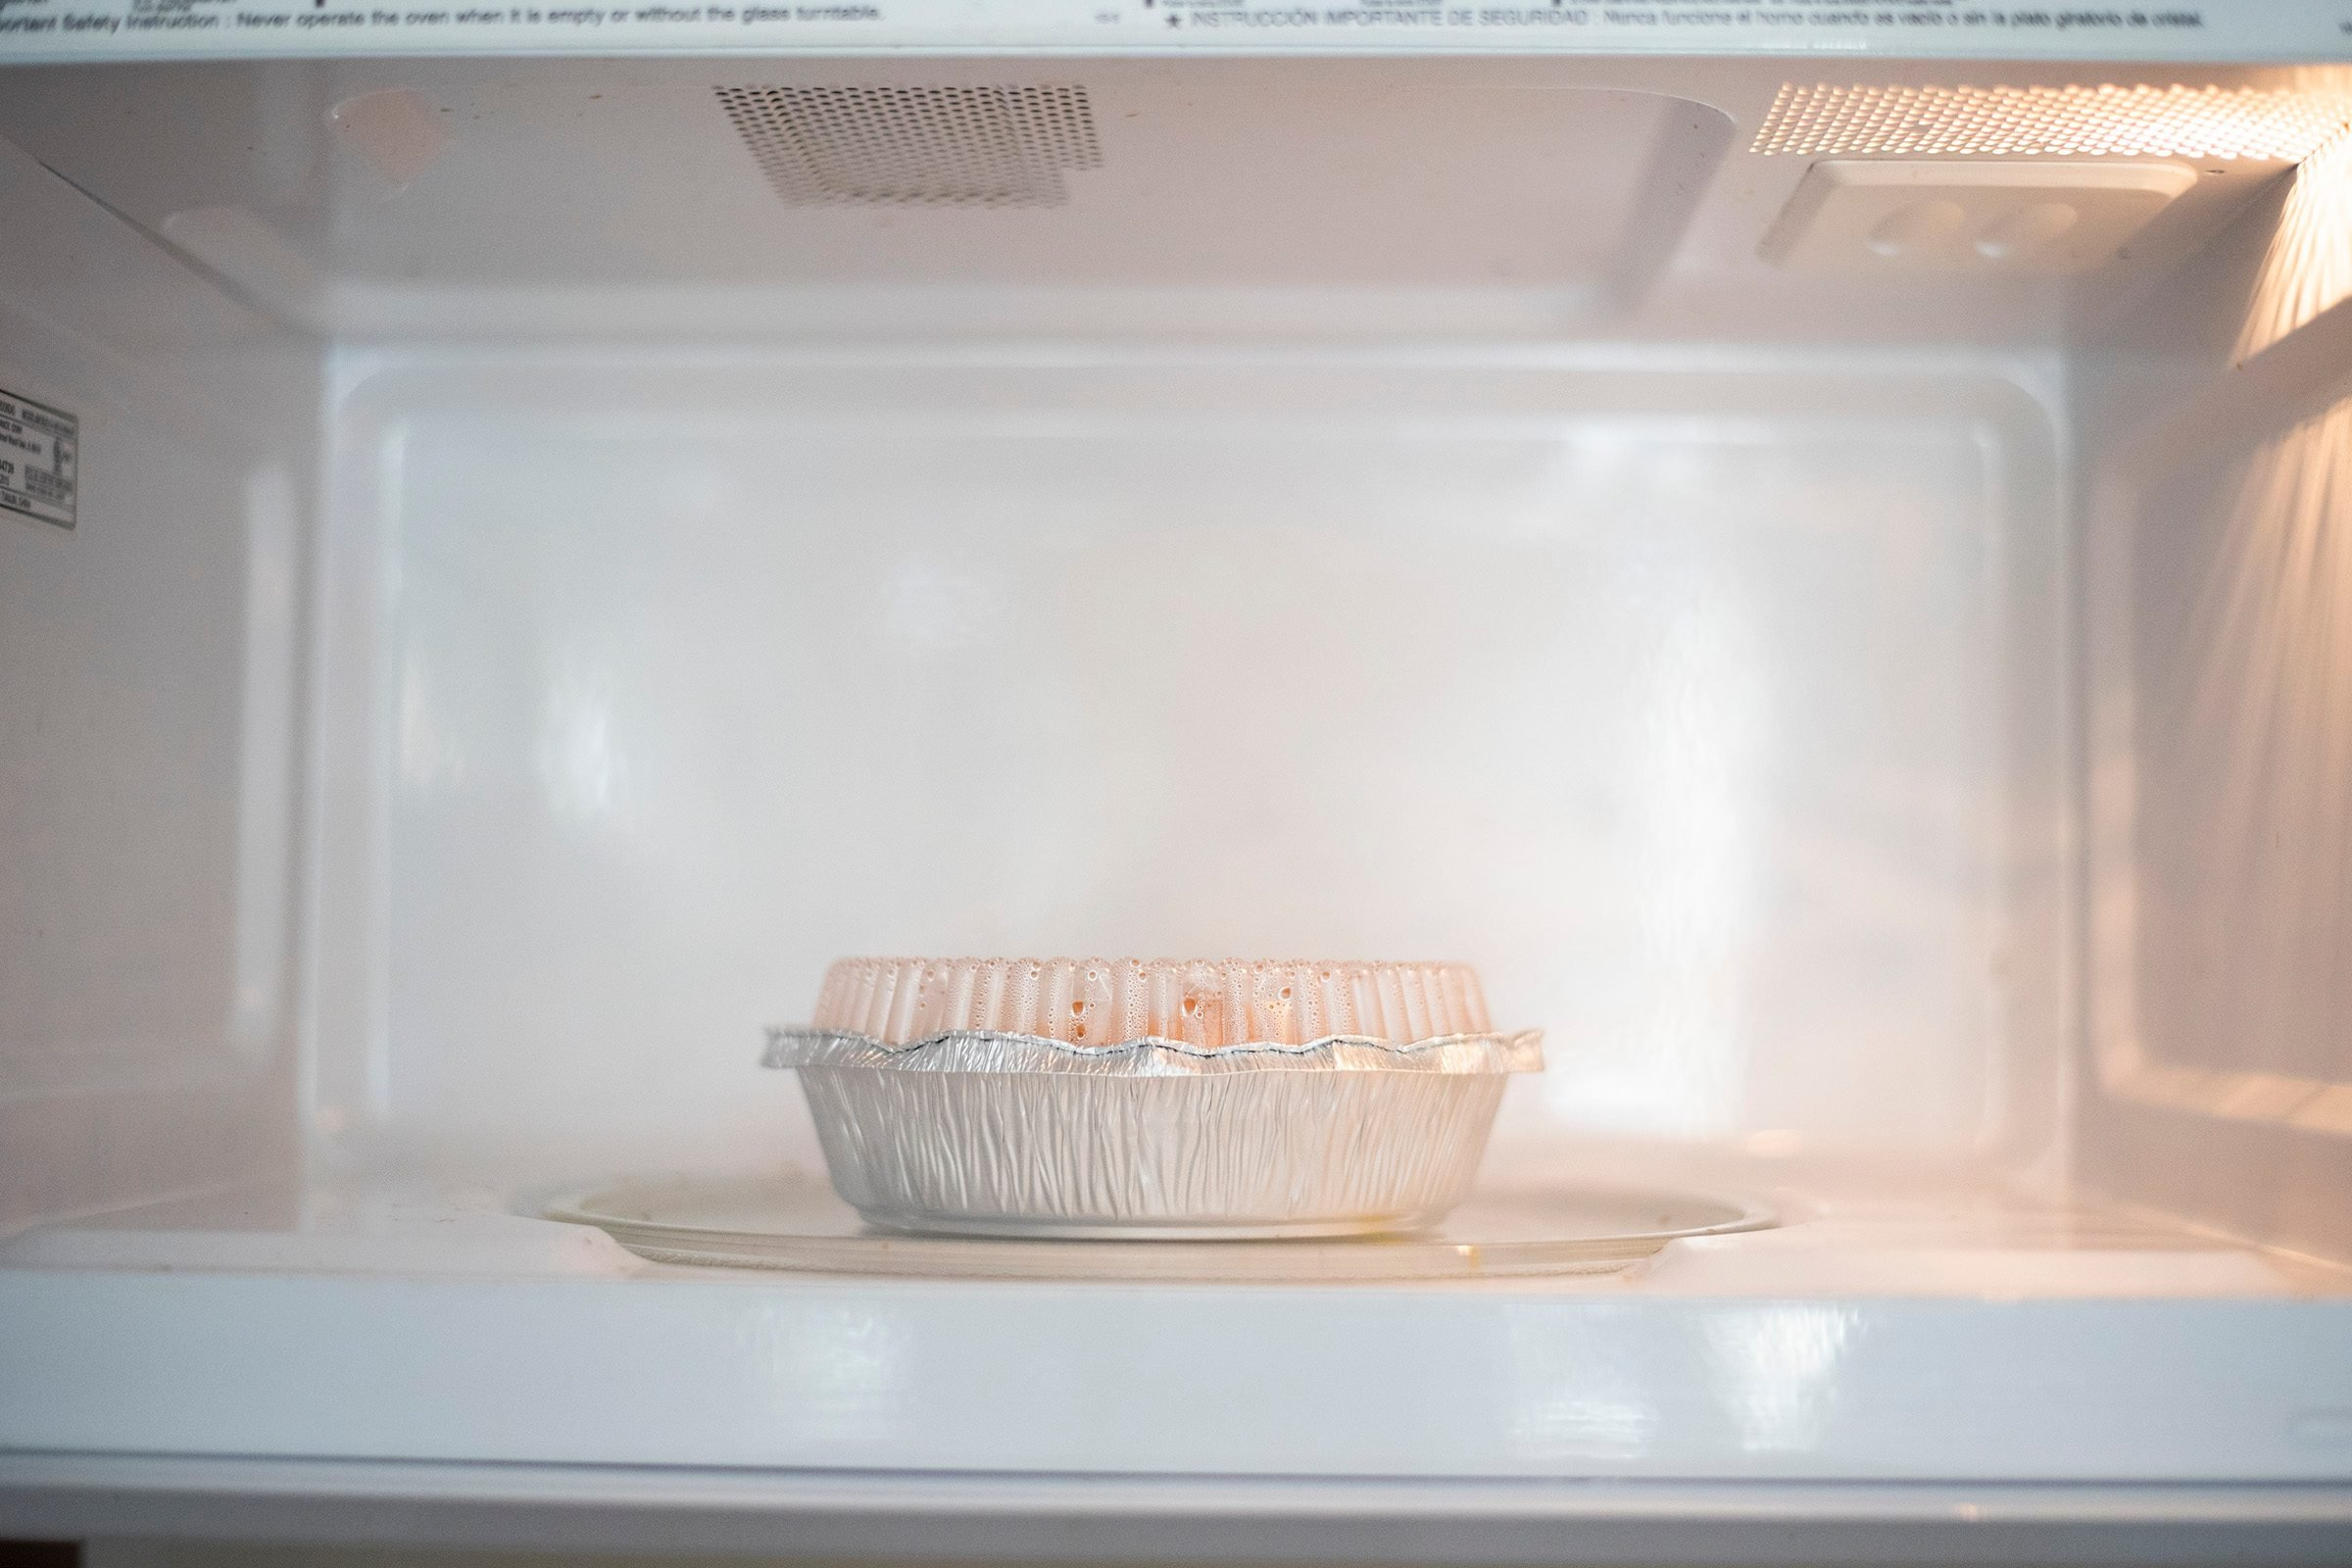 not microwave safe